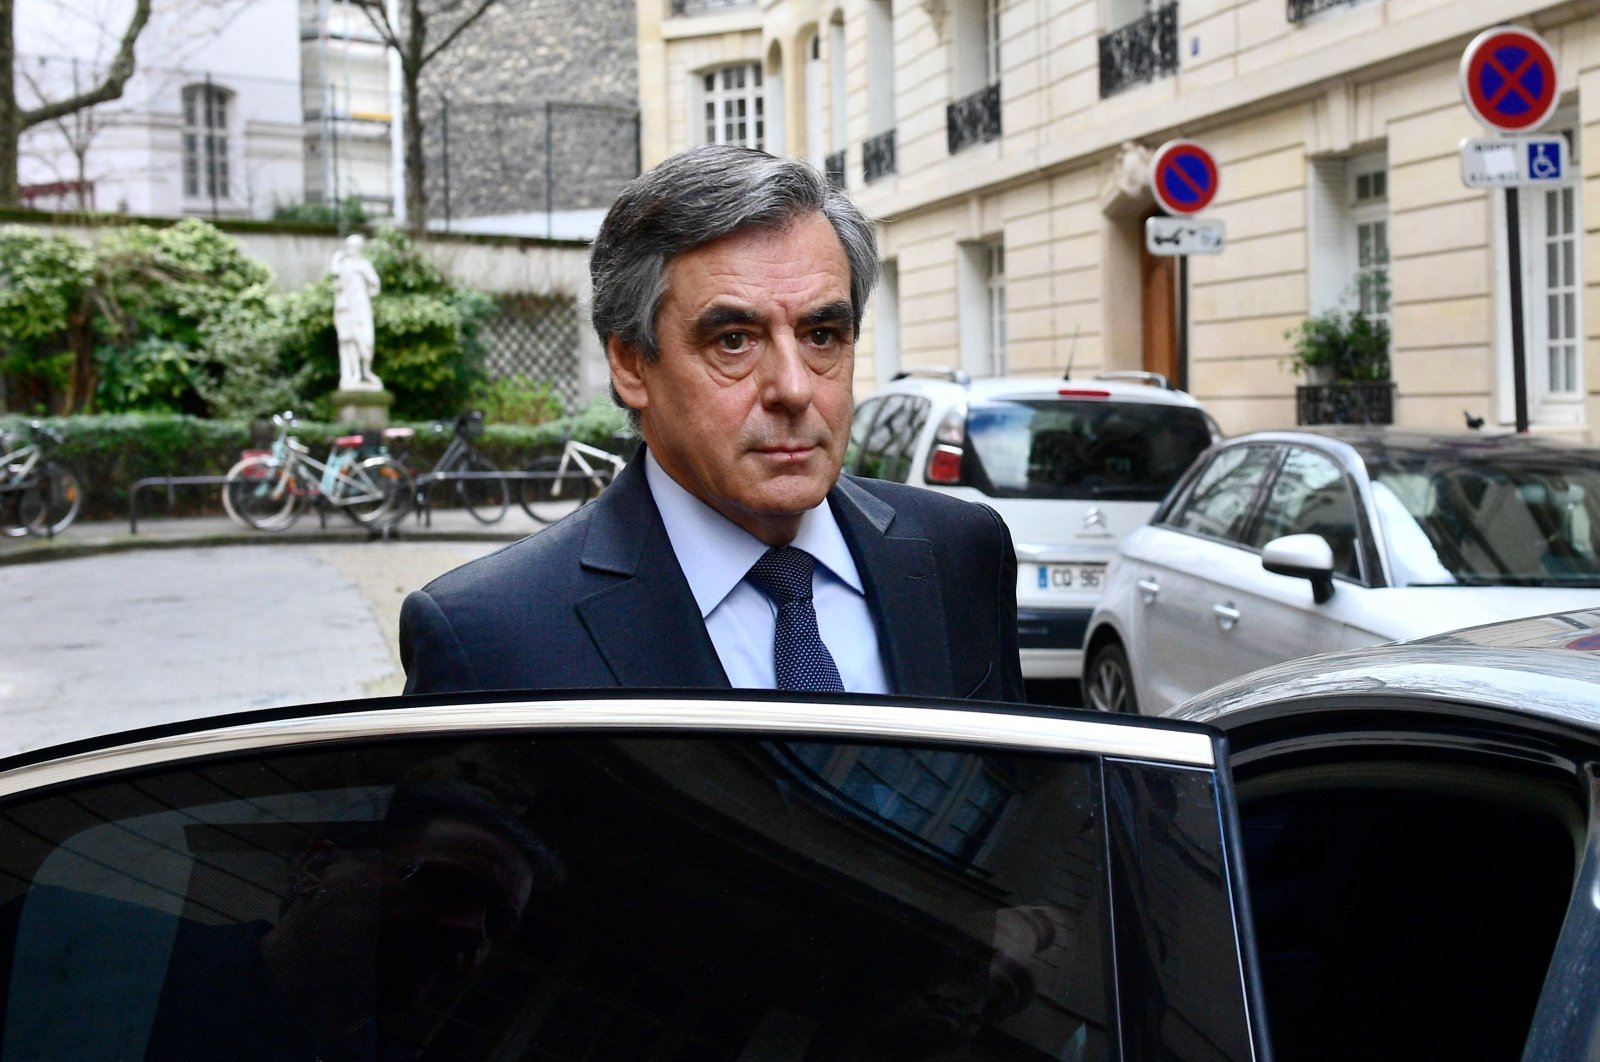 In this file photo taken on February 24, 2020, former French prime minister Francois Fillon leaves his home in Paris. (AFP Photo)